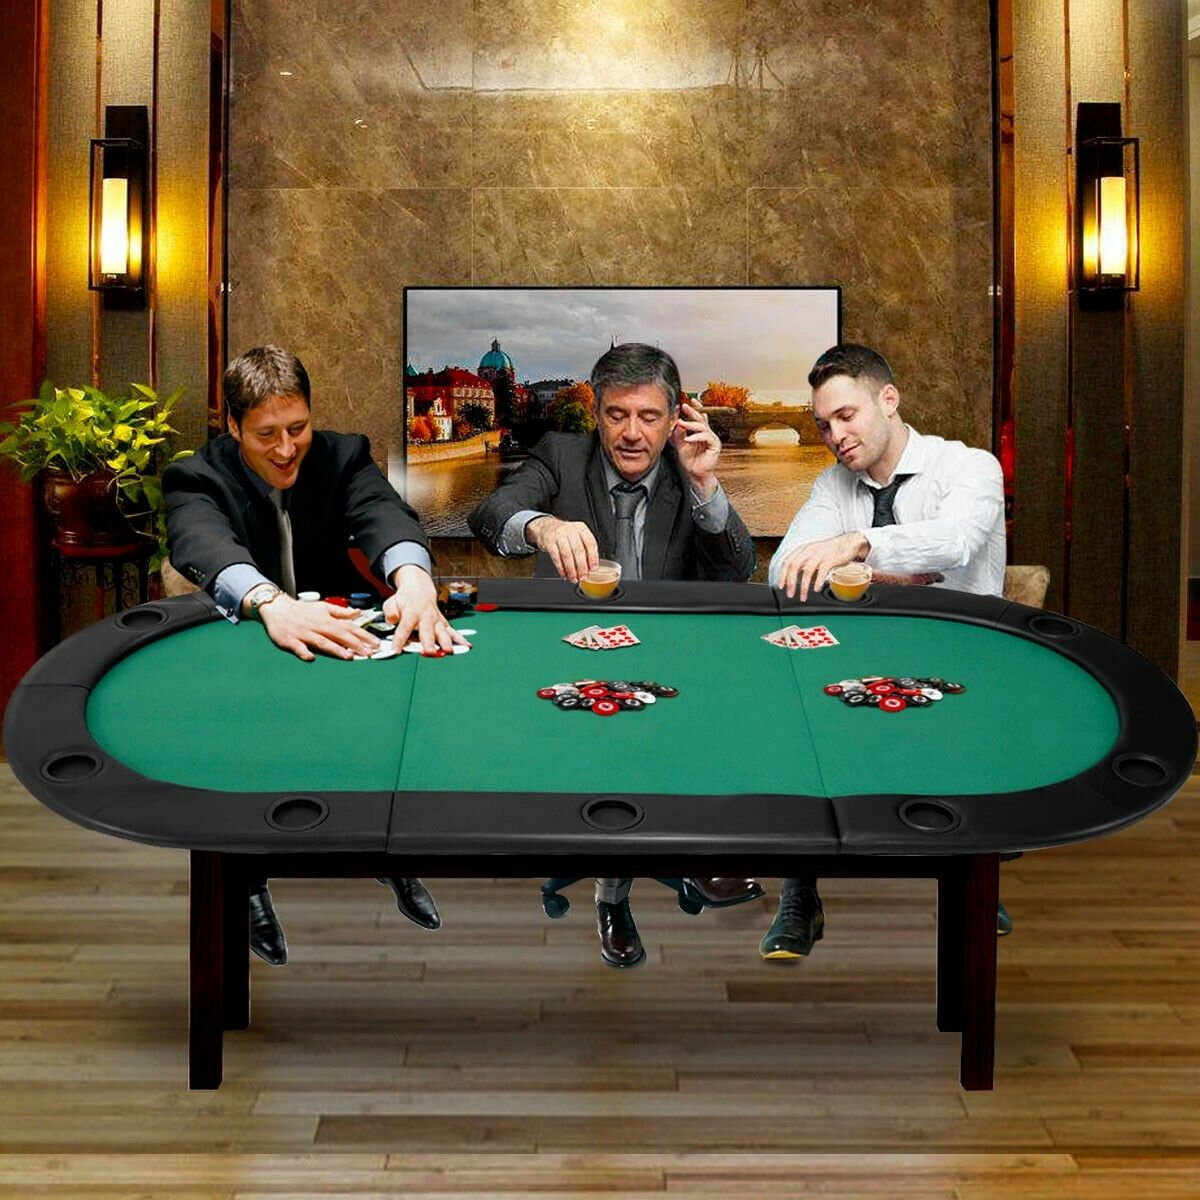 Details about 79x36 8 players texas holdem foldable